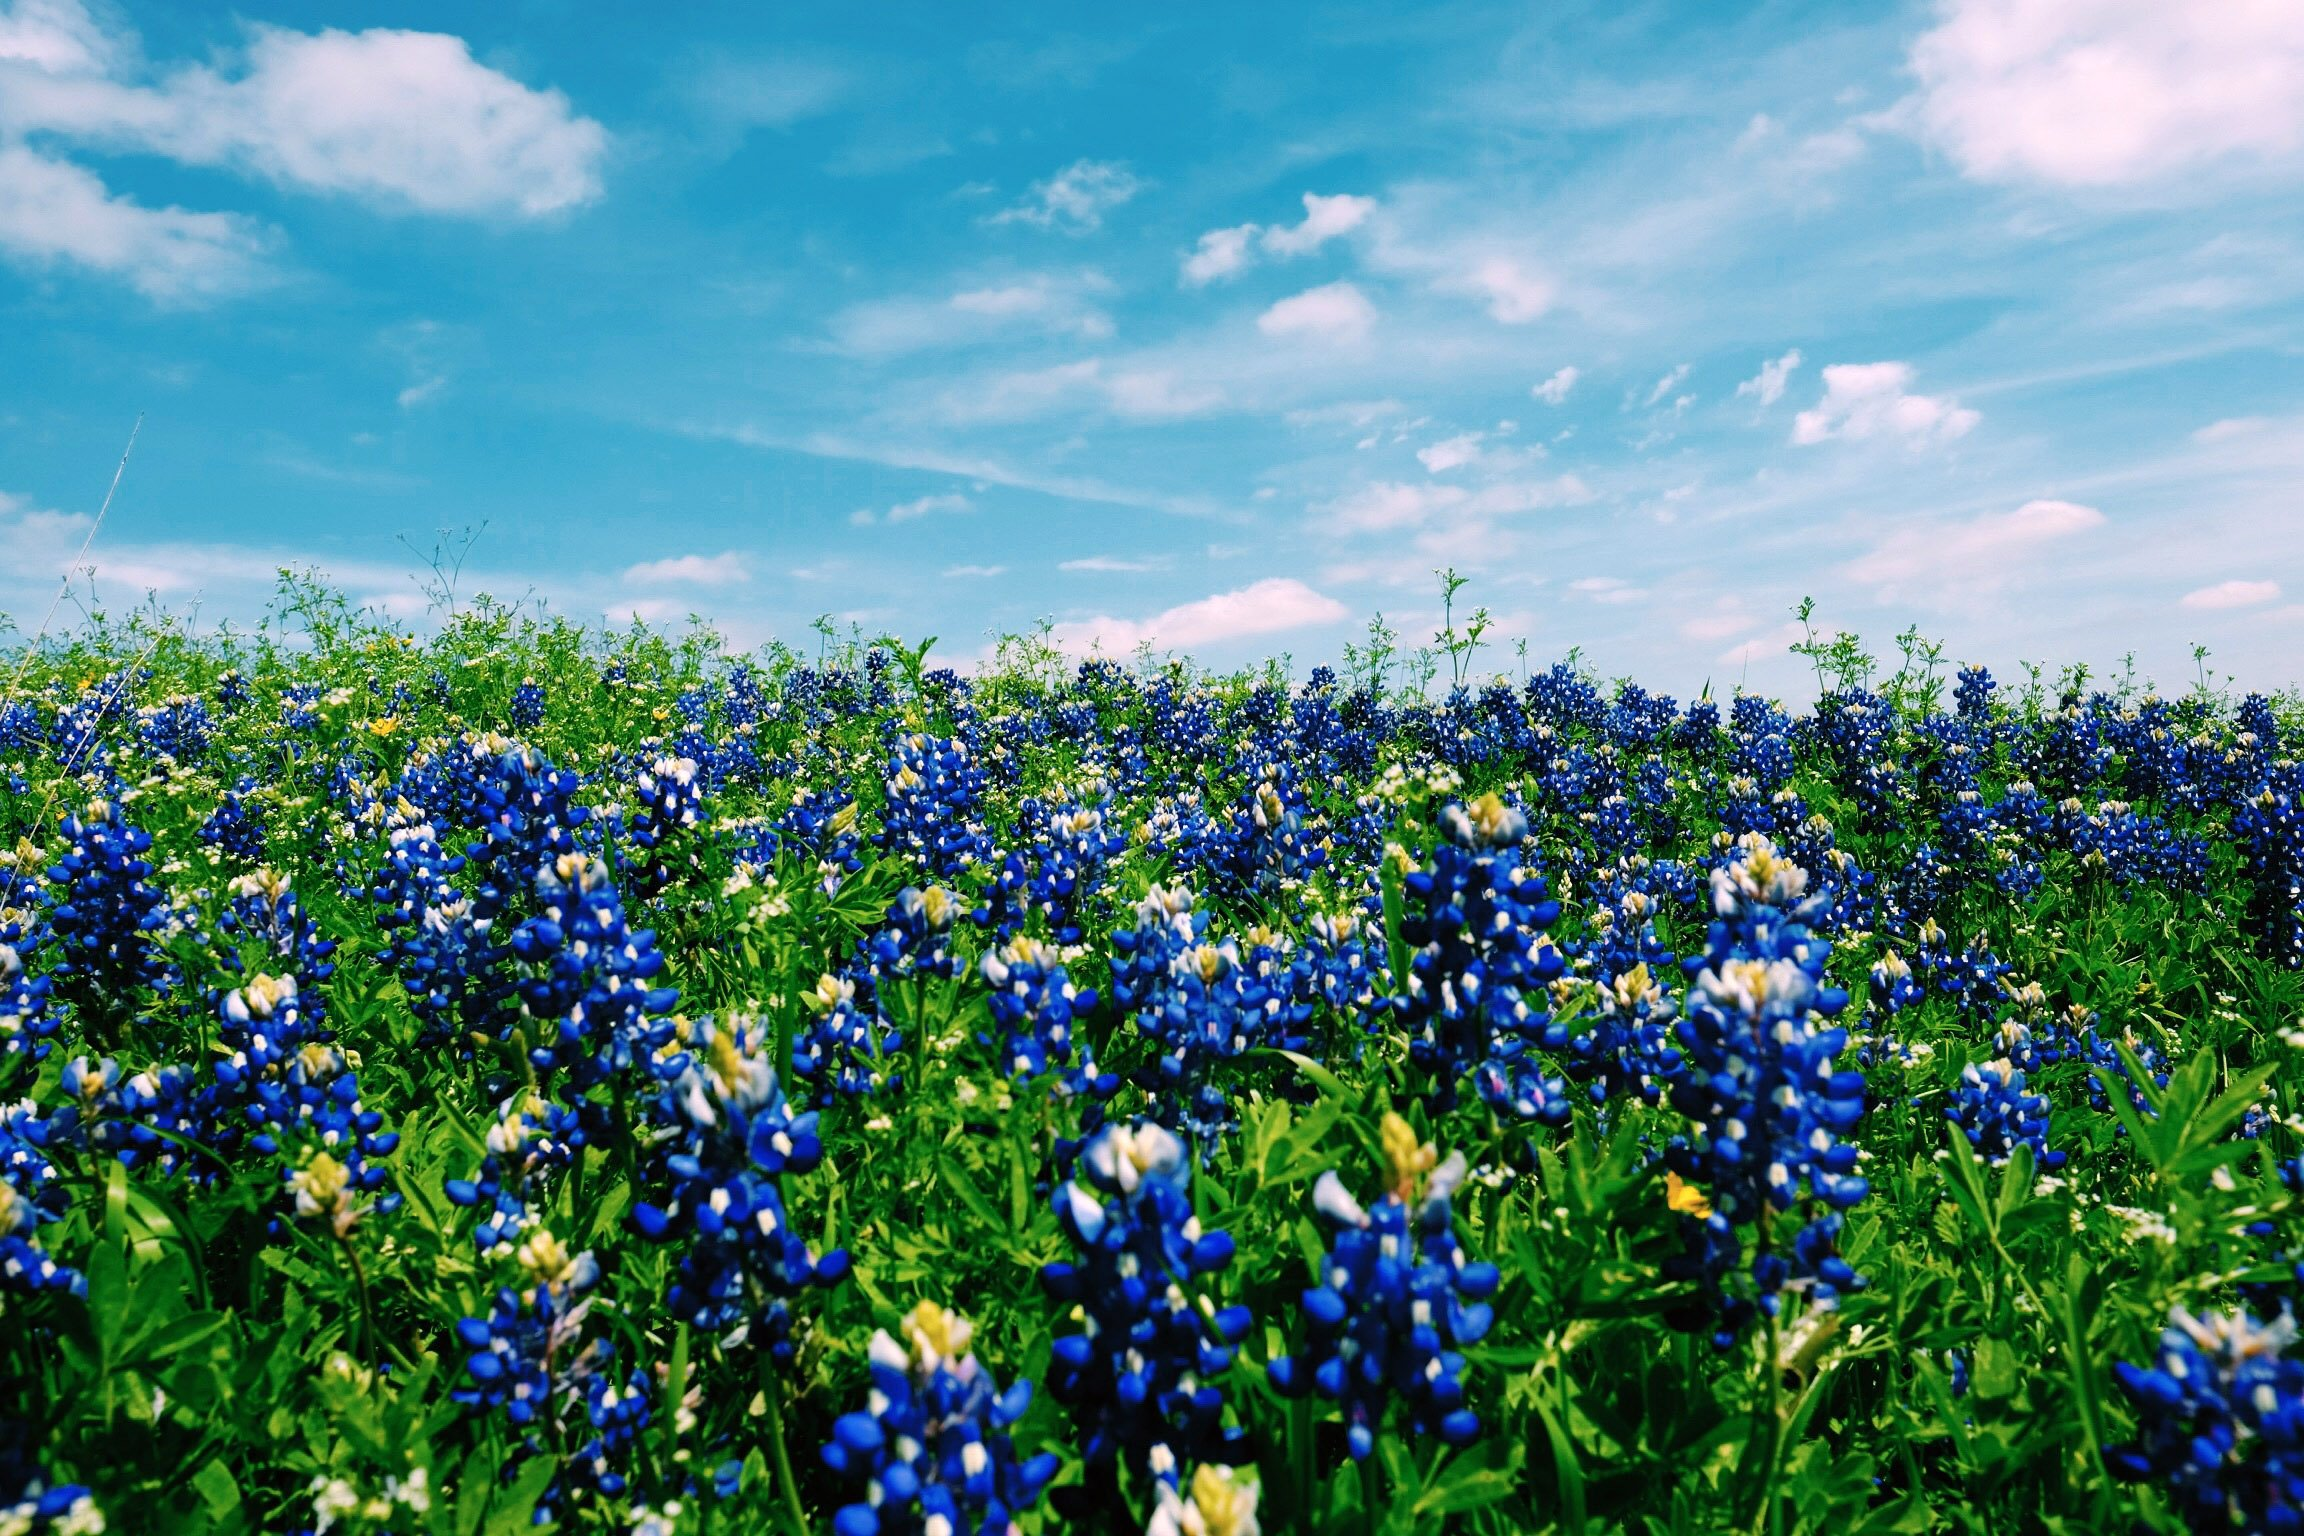 blue-flower-field-in-austin-texas.jpg